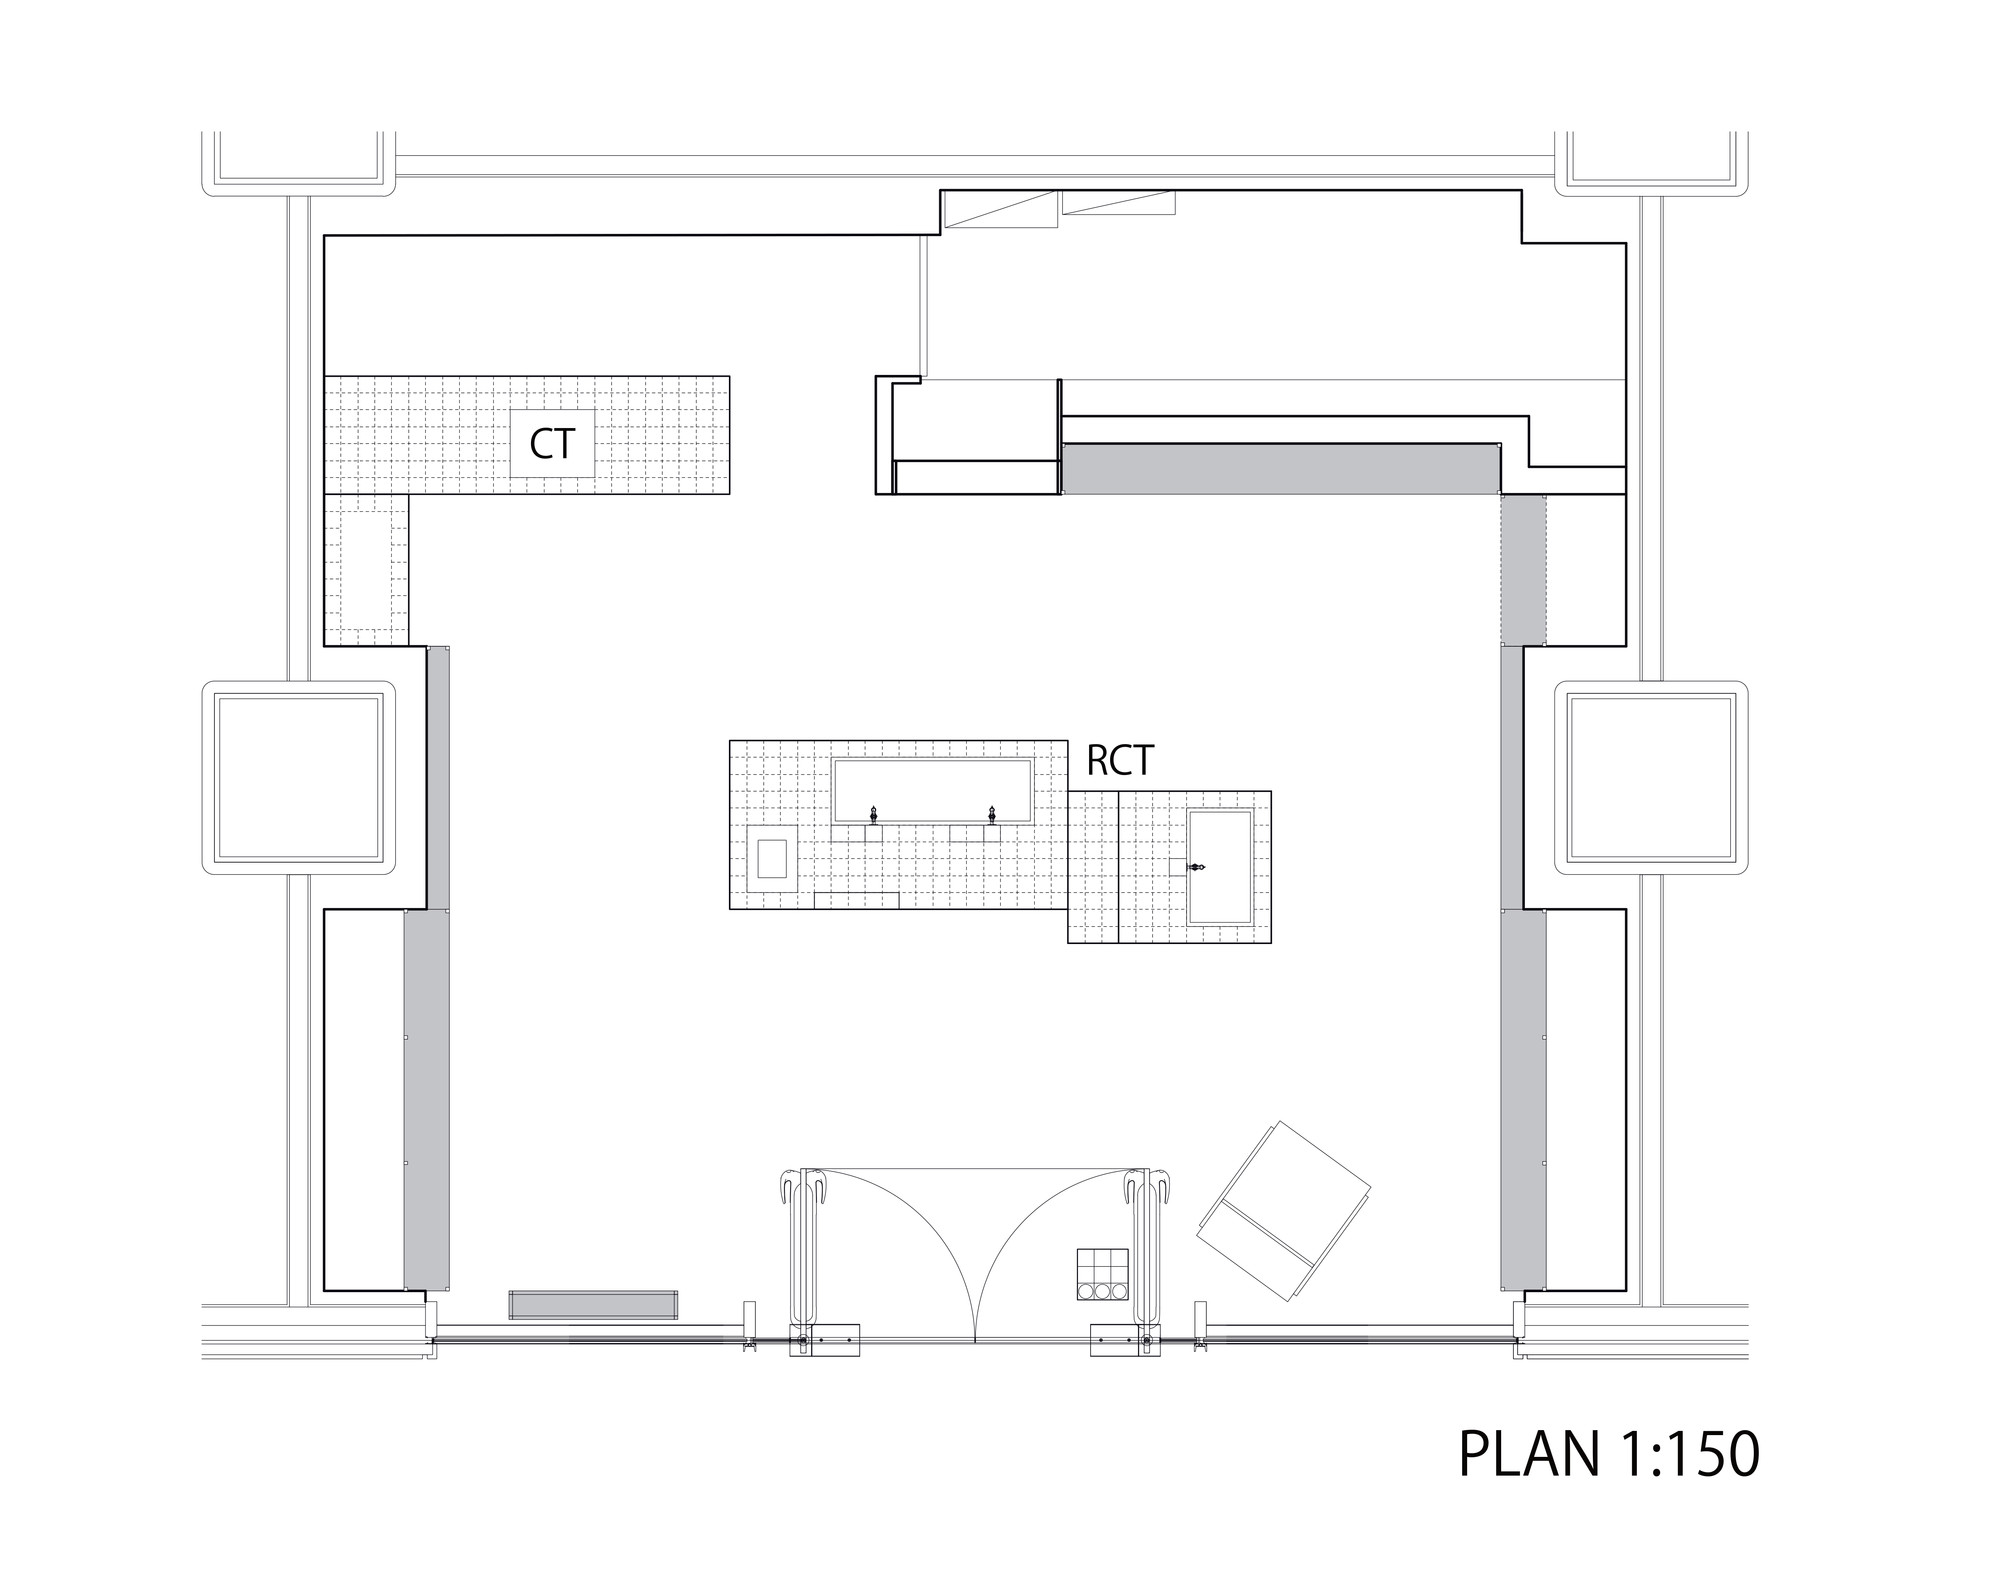 53a9f2e2c07a80e73200000b Aesop Grand Front Osaka Torafu Architects Floor Plan on Grand Design Floor Plan